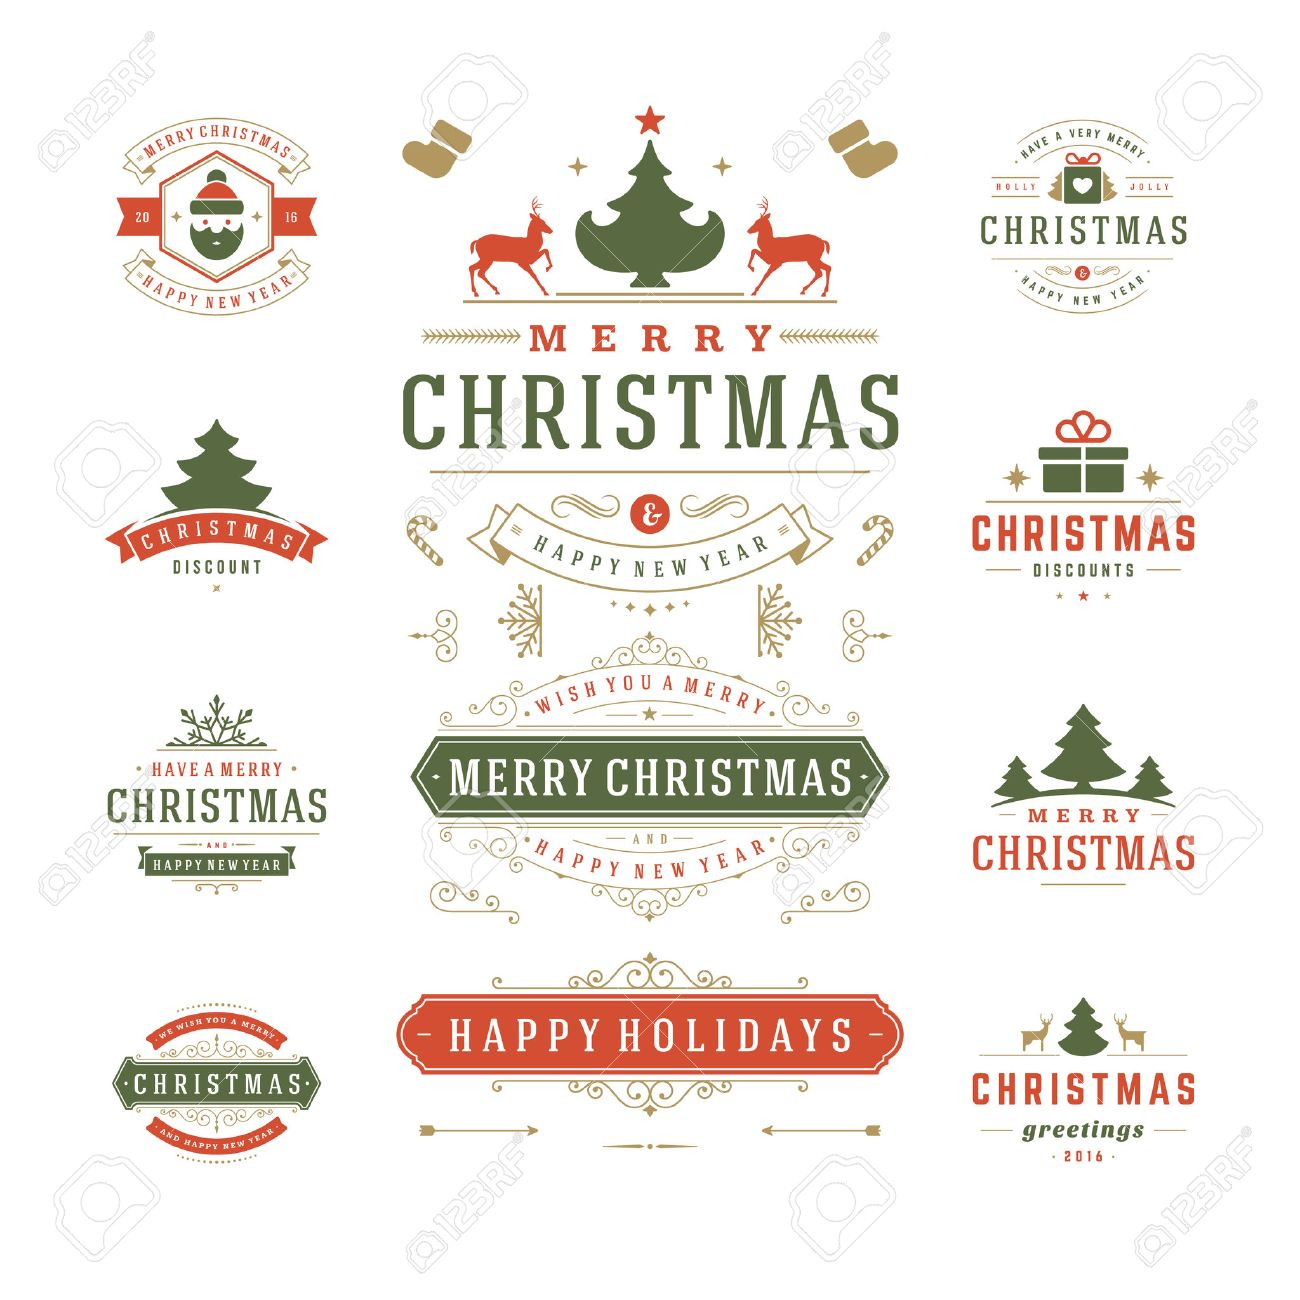 Merry Christmas Labels.Christmas Labels And Badges Vector Design Decorations Elements